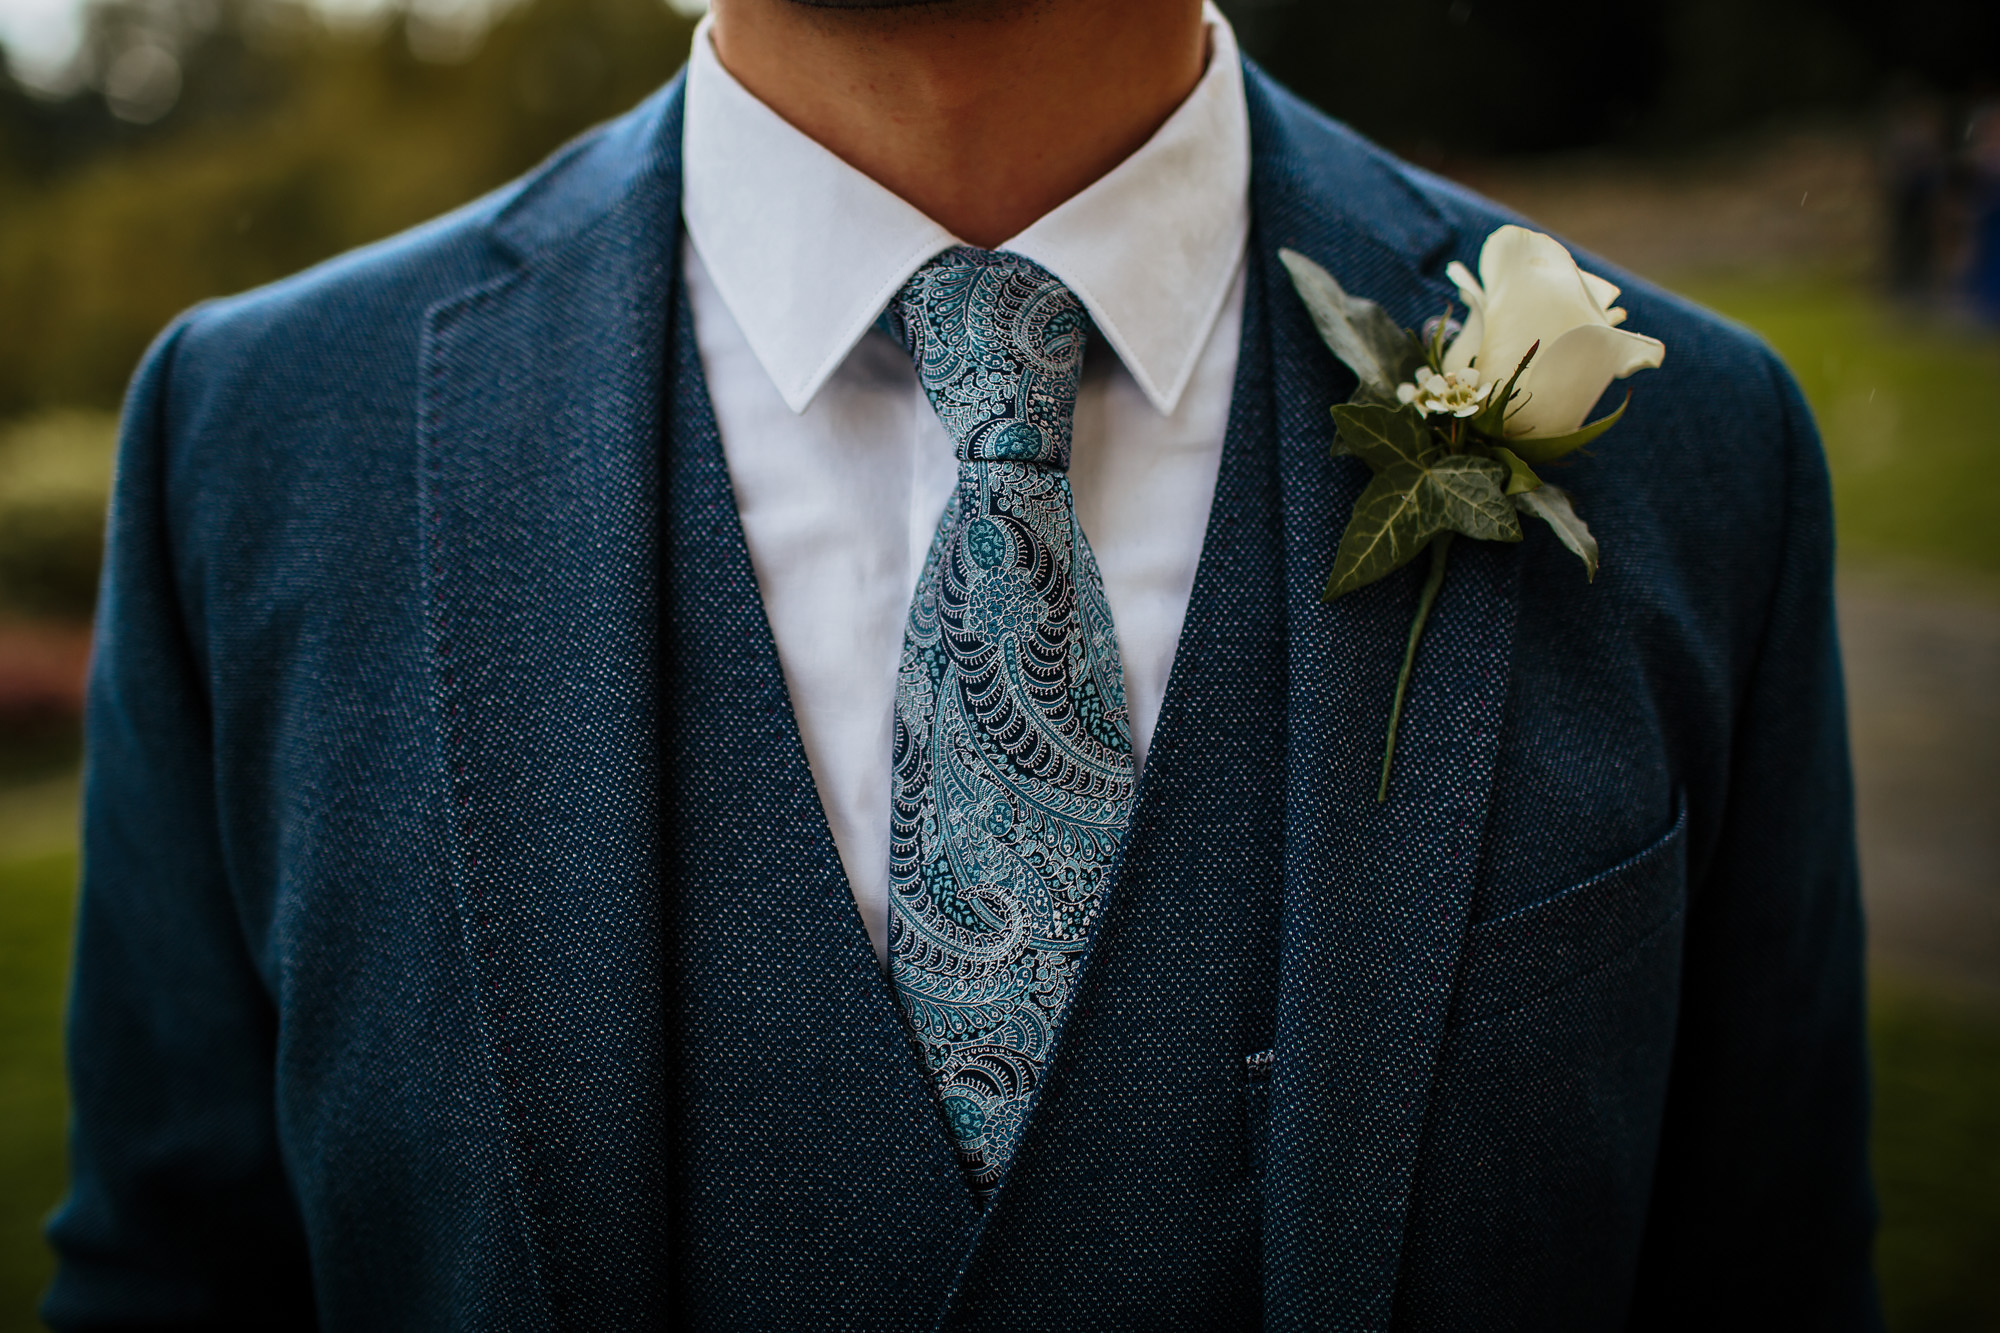 Close up of grooms suit with a buttonhole for the wedding